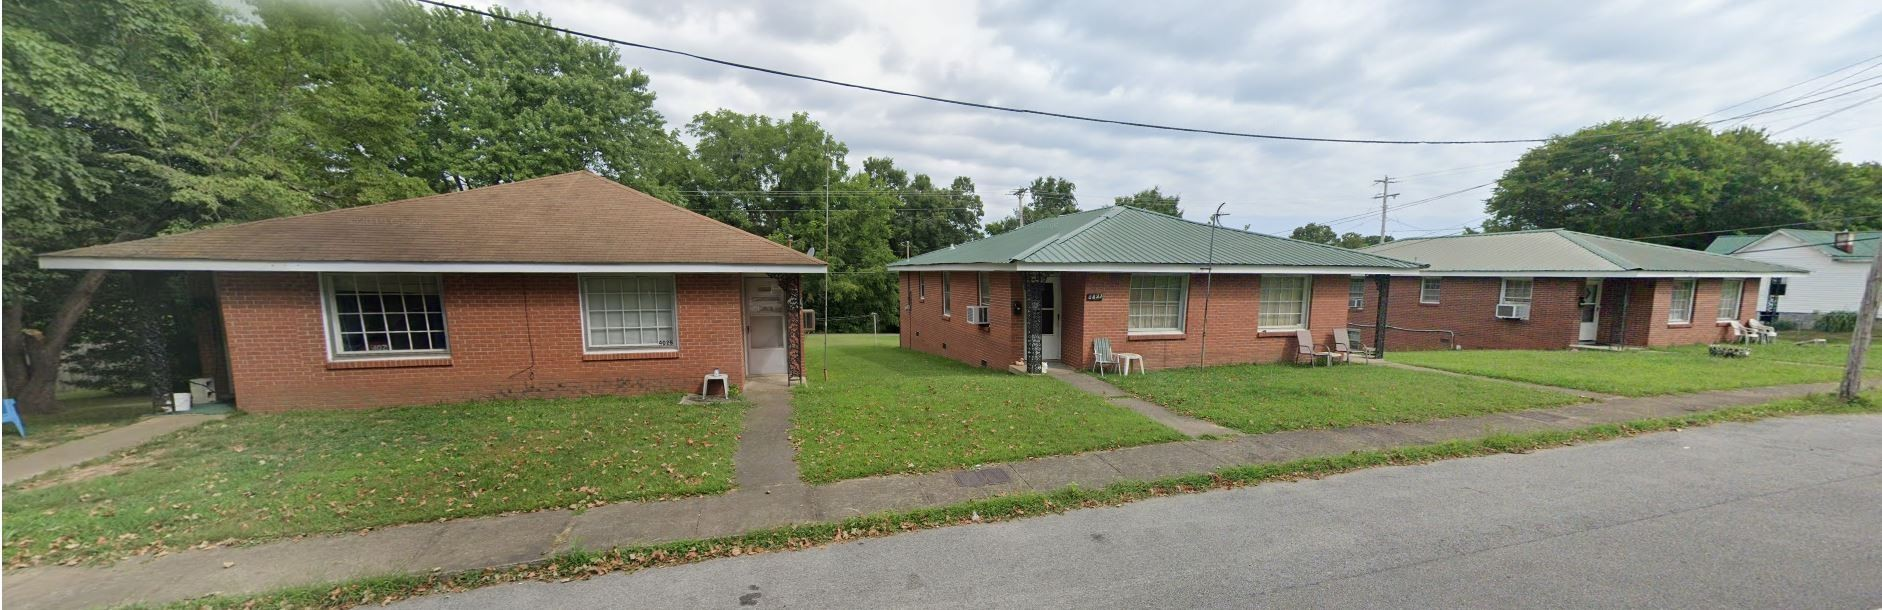 402 N Main St Property Photo - Dickson, TN real estate listing